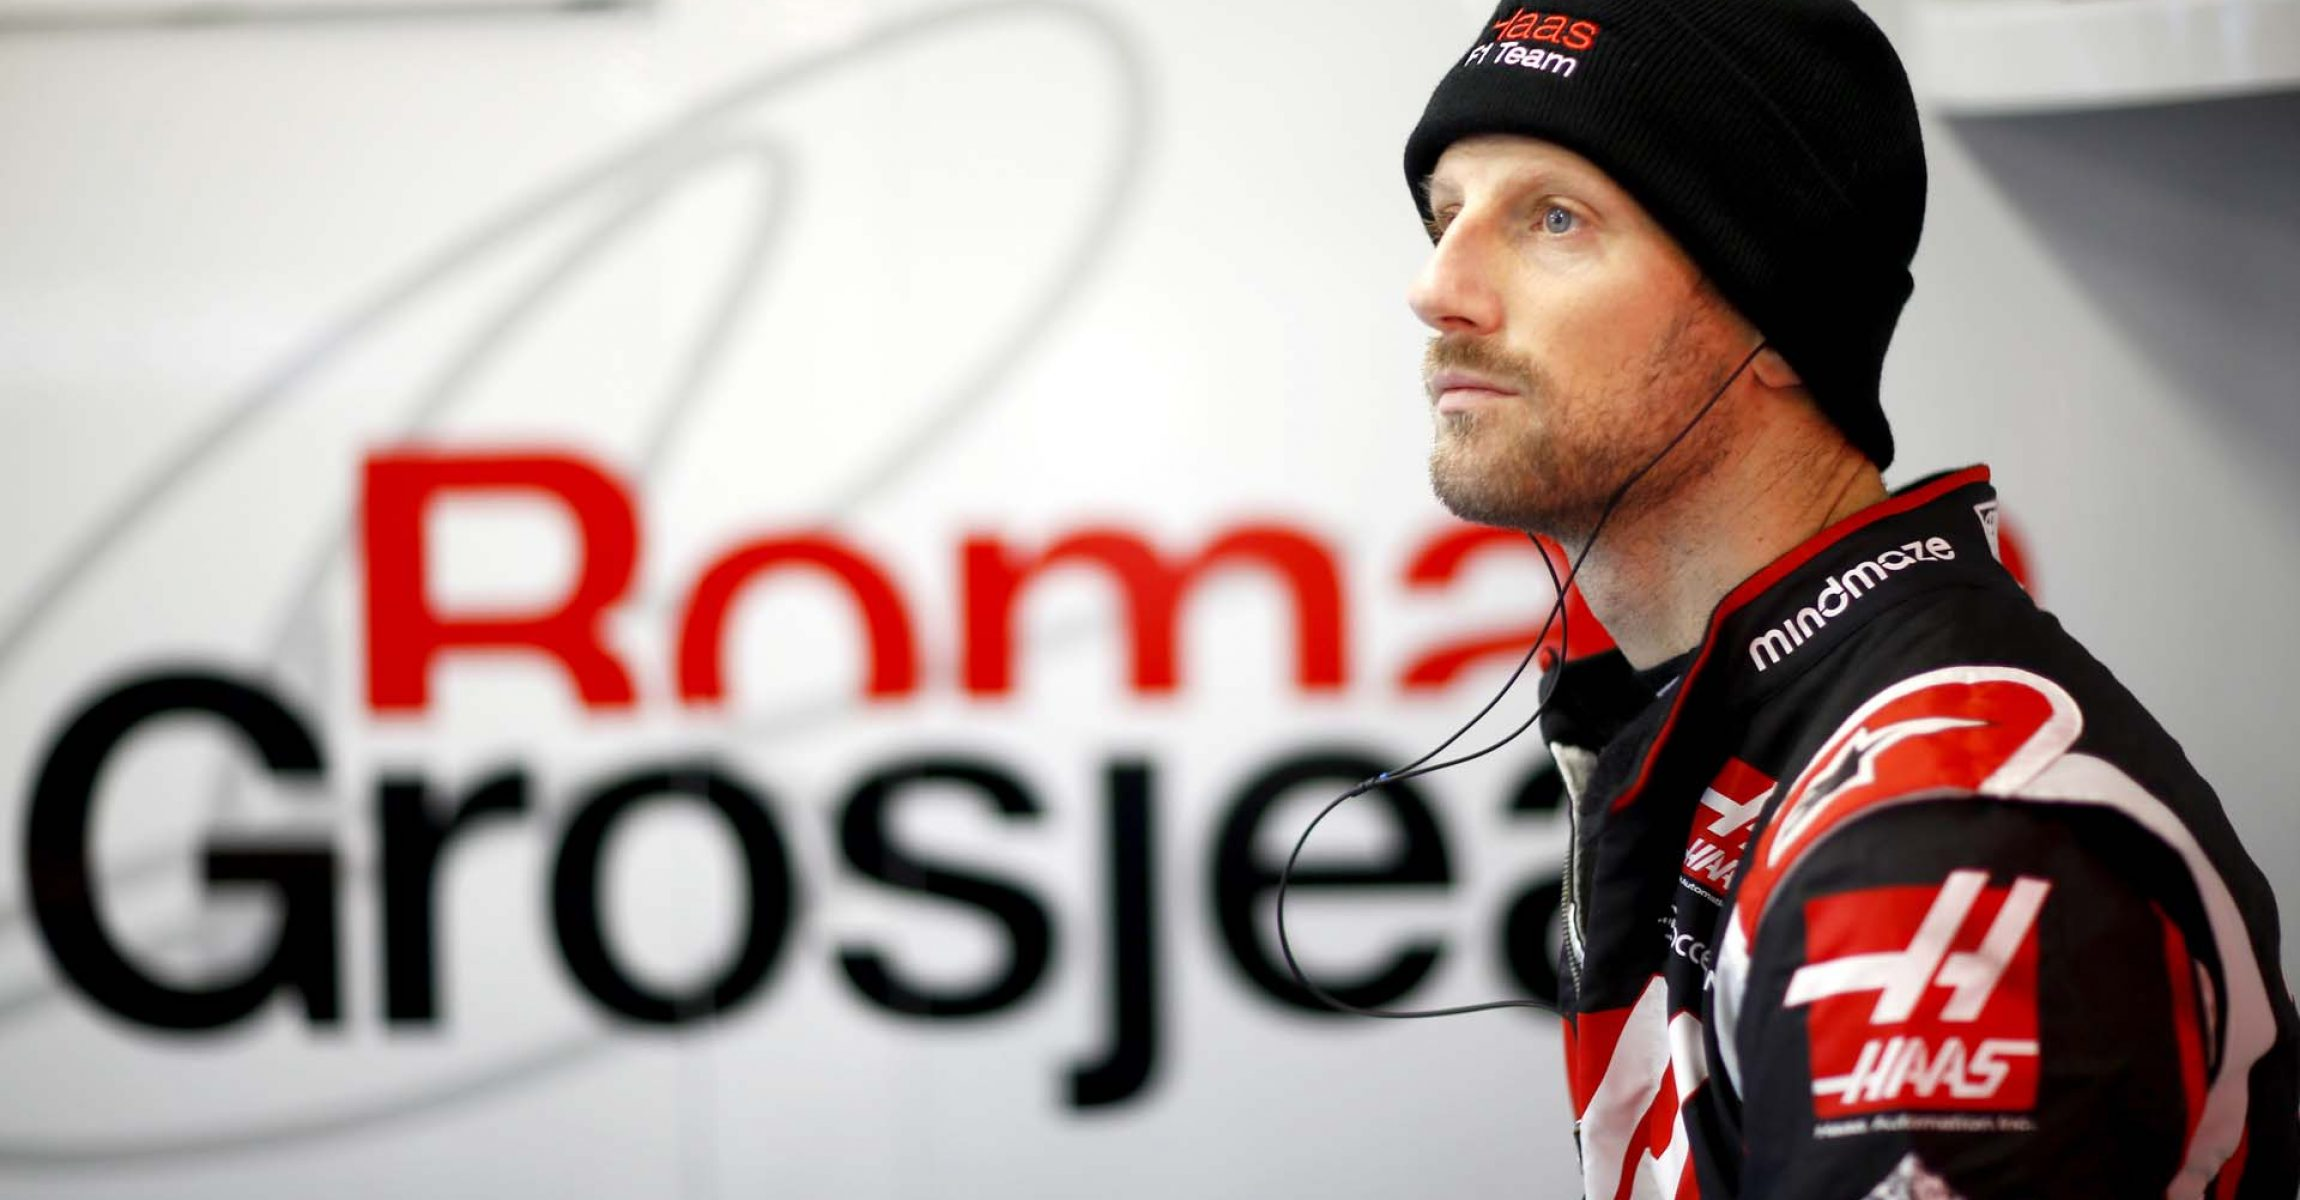 CIRCUIT DE BARCELONA-CATALUNYA, SPAIN - FEBRUARY 26: Romain Grosjean, Haas in the garage during the Barcelona February testing II at Circuit de Barcelona-Catalunya on February 26, 2020 in Circuit de Barcelona-Catalunya, Spain. (Photo by Andy Hone / LAT Images)